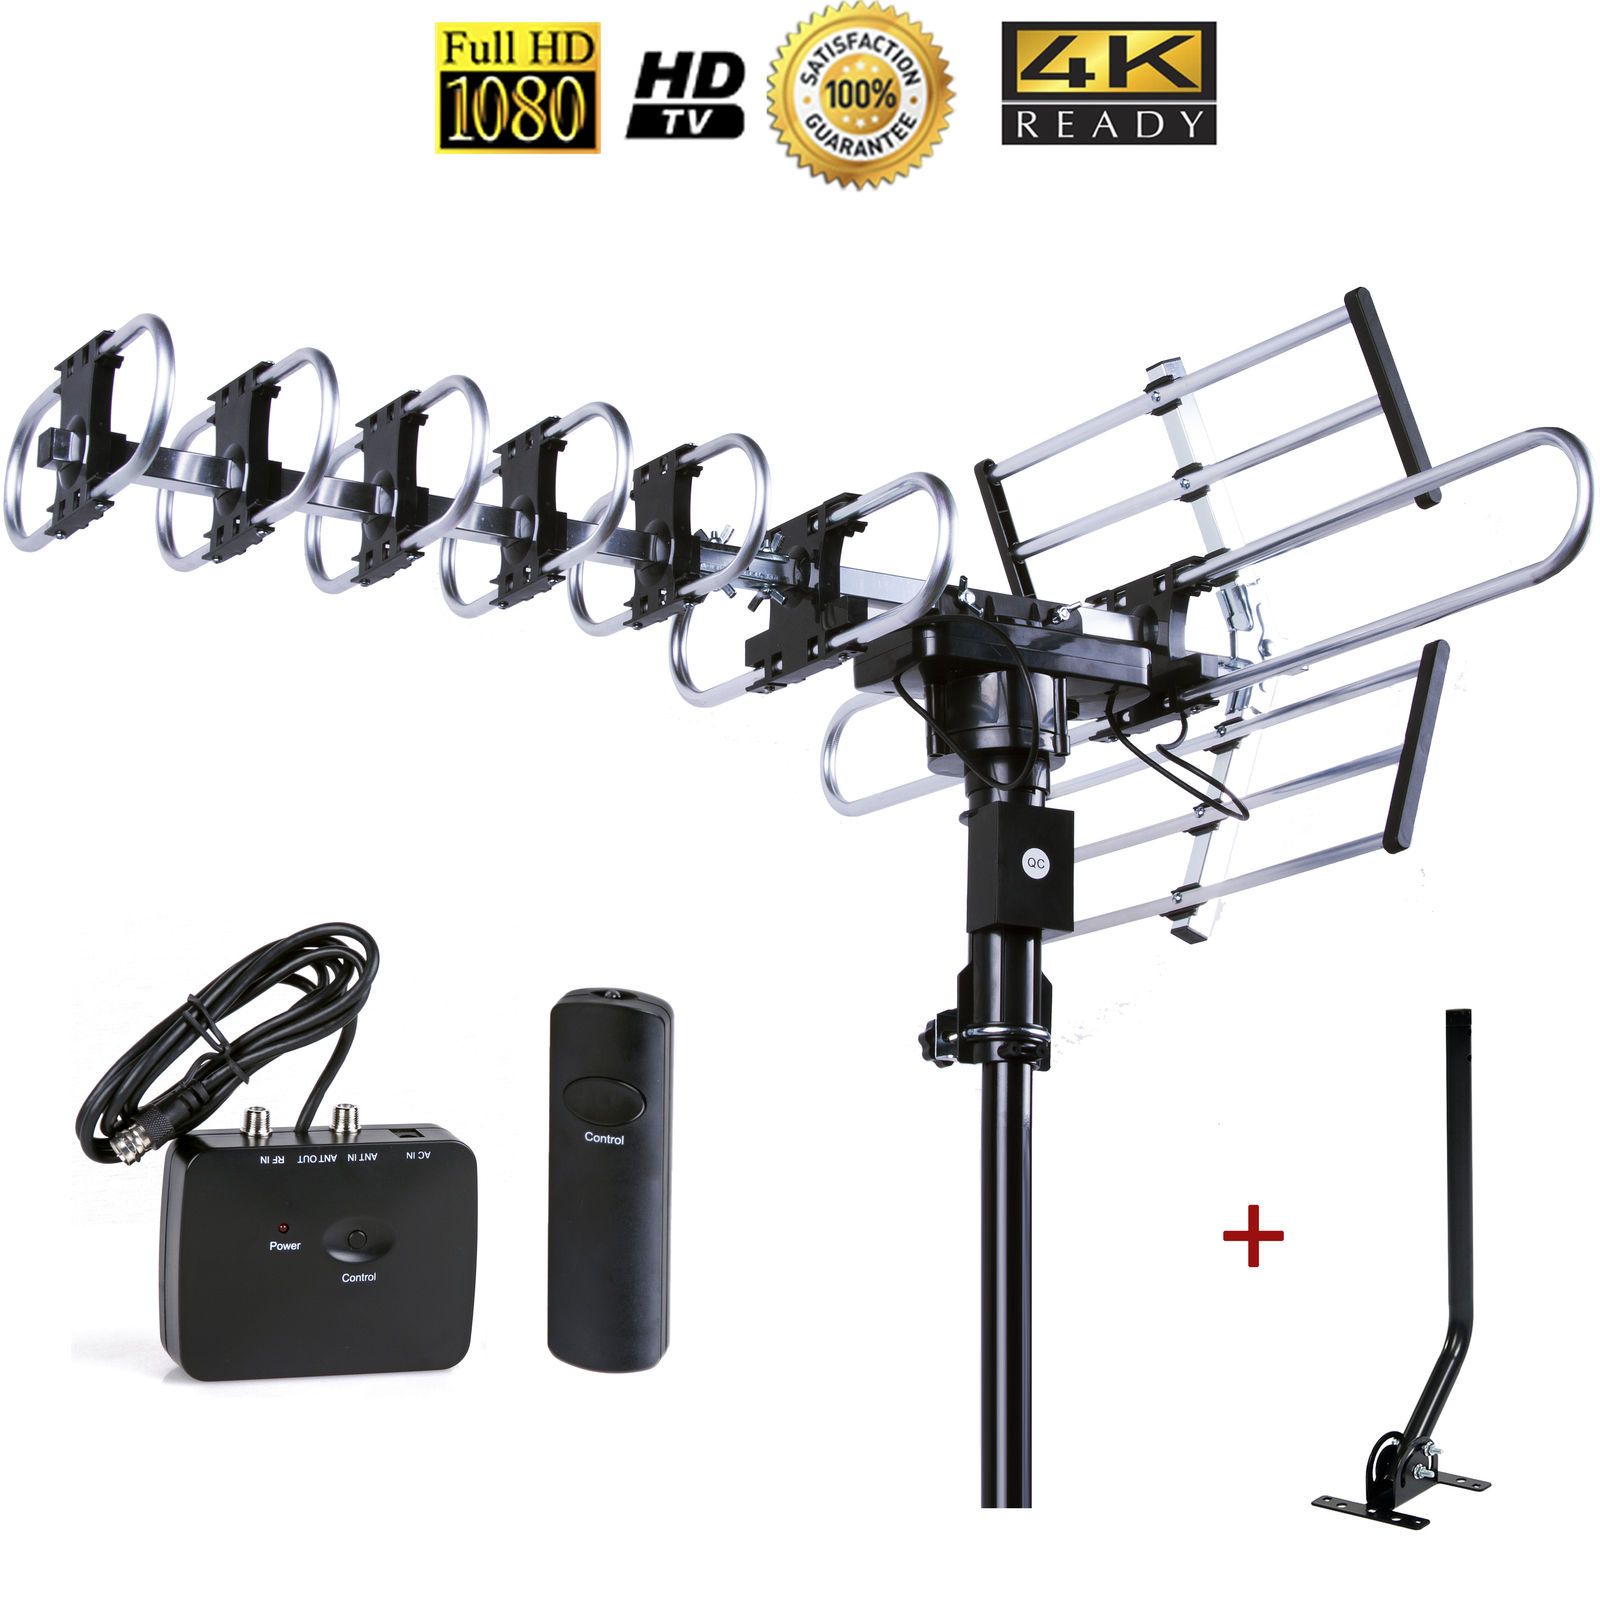 Up to 200 Miles Long range Five Star Outdoor 4K HDTV Antenna with 360 Degree Rotation, UHF/VHF/FM Radio with Remote Control with J-pole